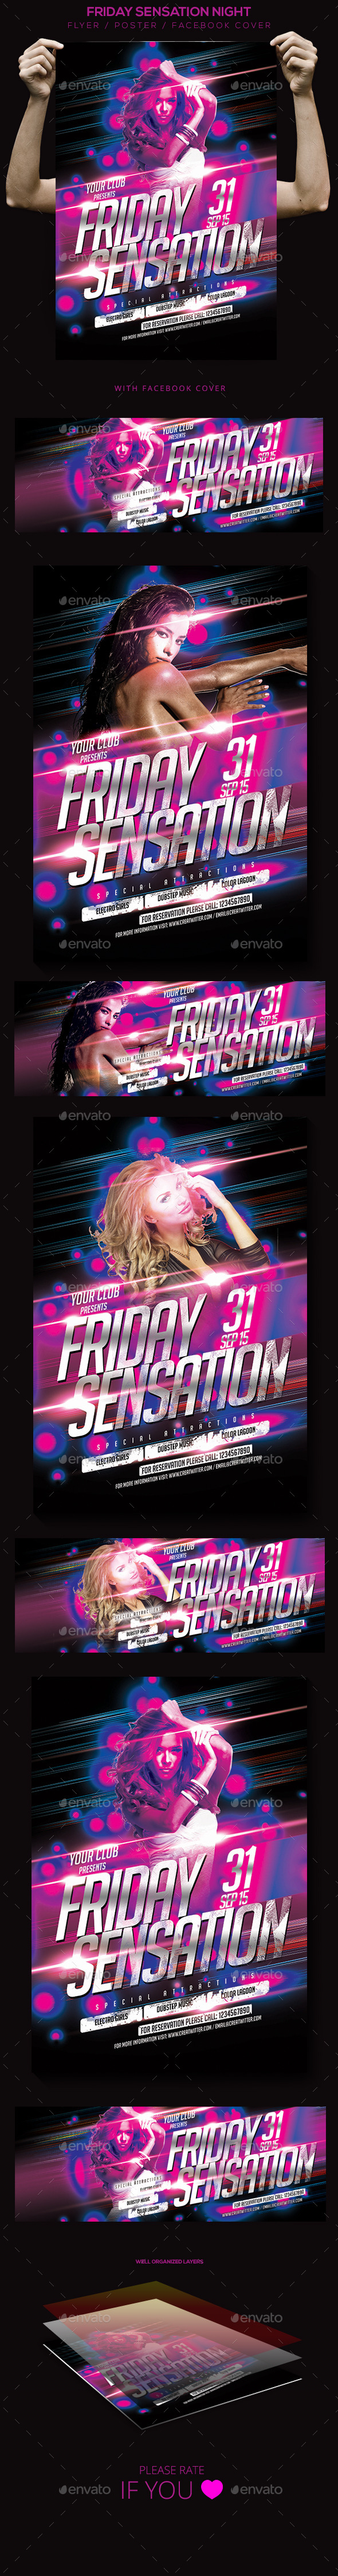 Friday Sensation Flyer / Poster / Facebook Cover - Clubs & Parties Events